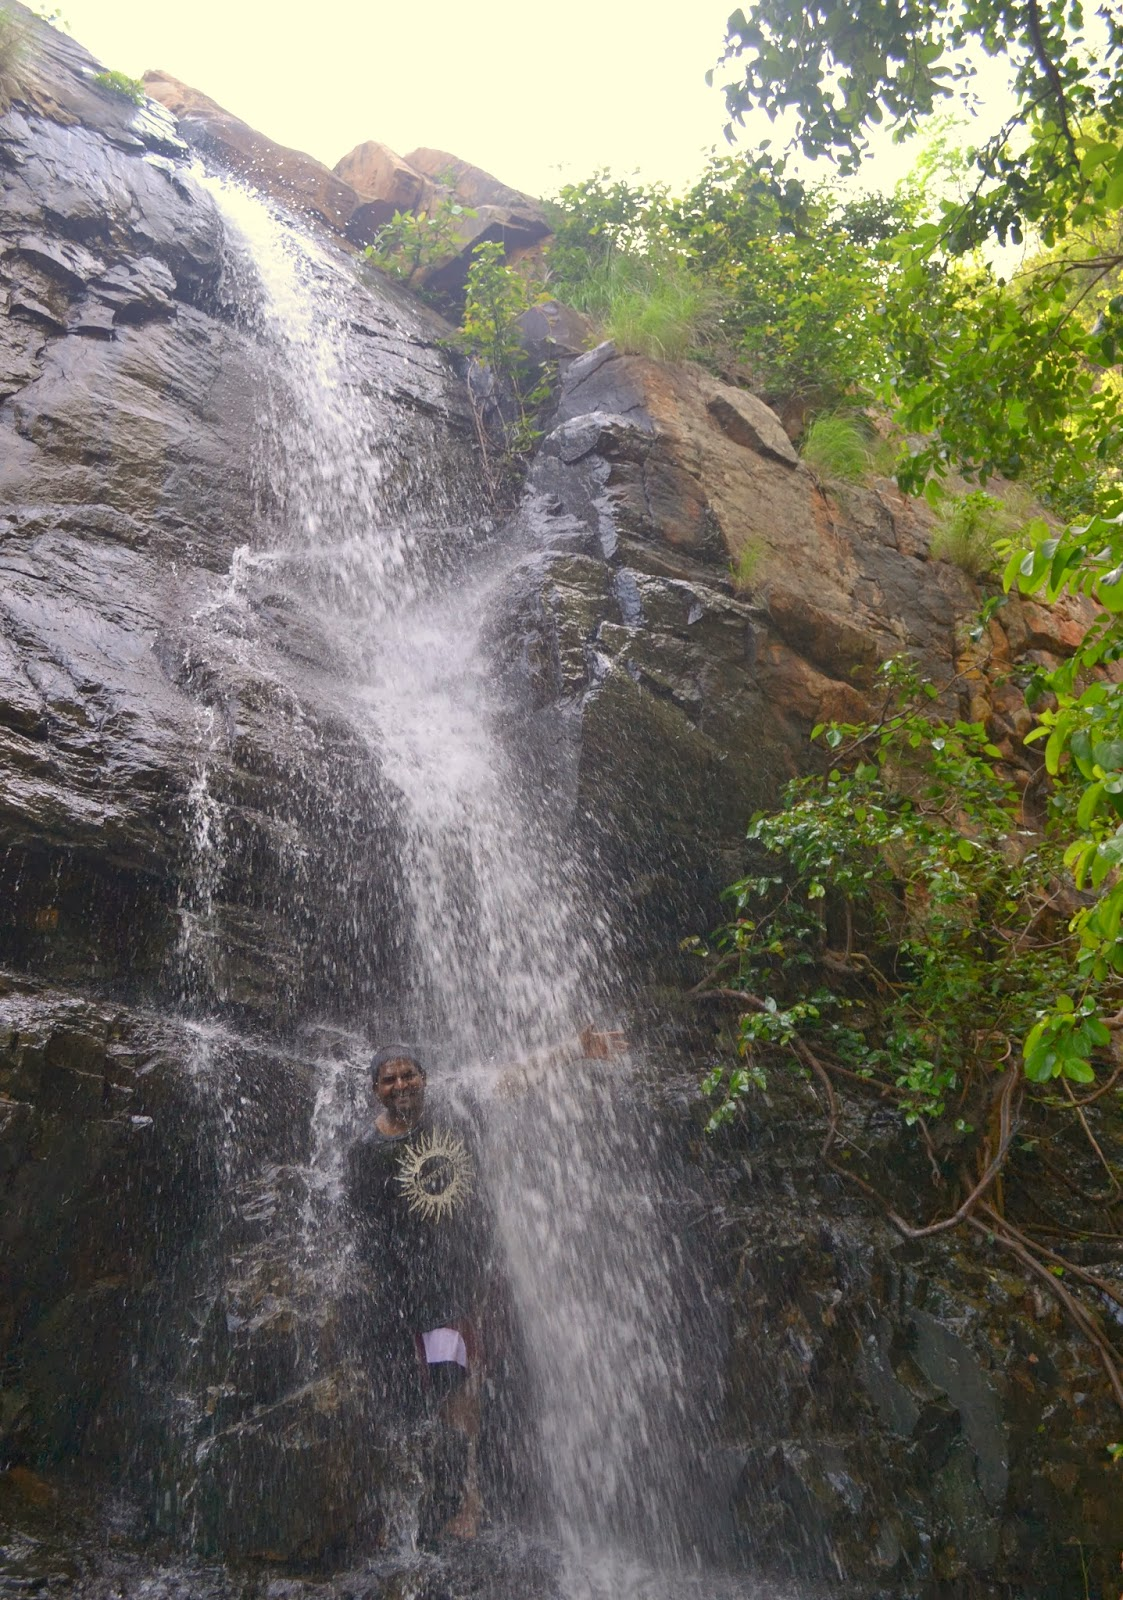 Waterfall at Prahladuni badi